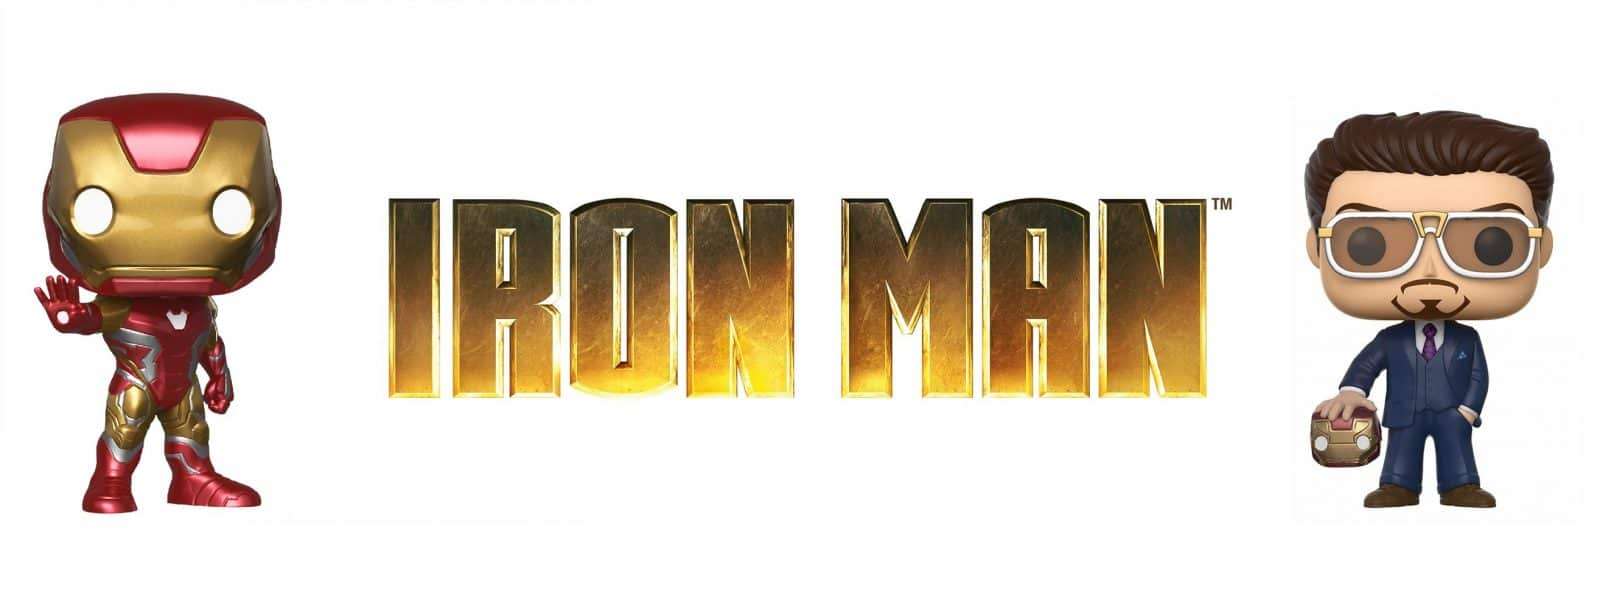 7fb1c70aea337 Iron Man Funko Pop Vinyl List - Let's Suit Up!